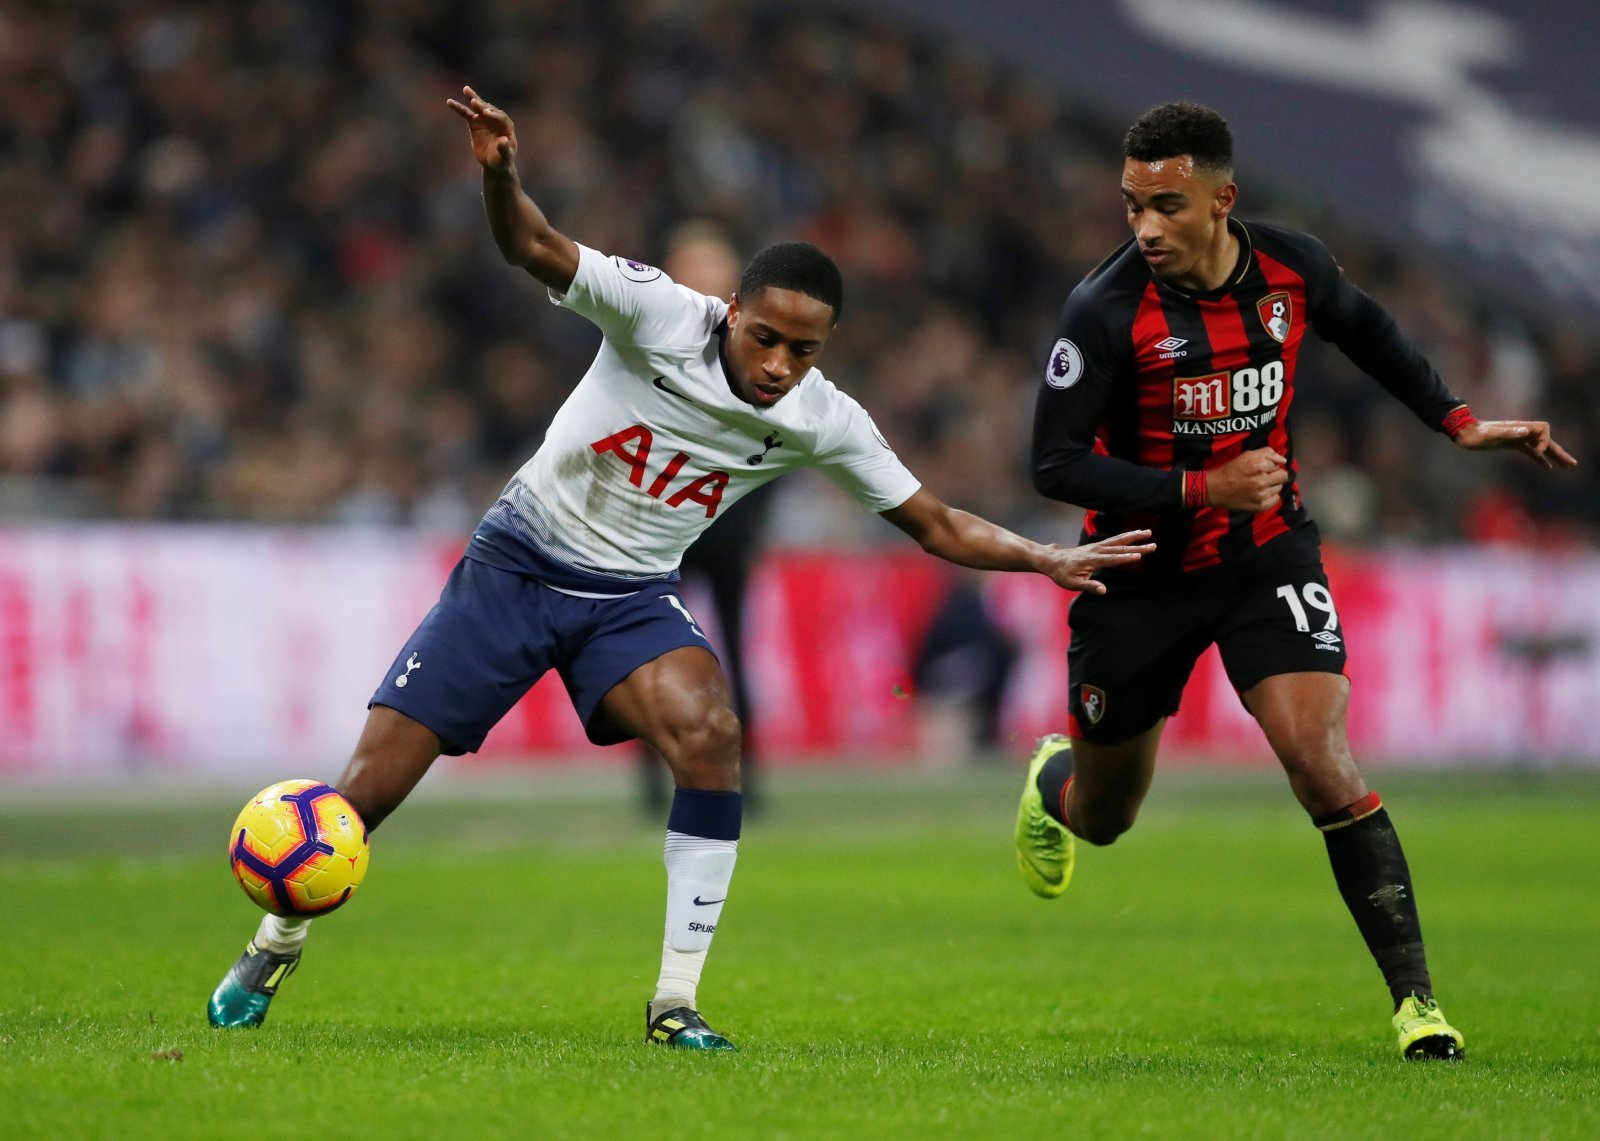 Tottenham fans on Twitter see little future for Walker-Peters at the club